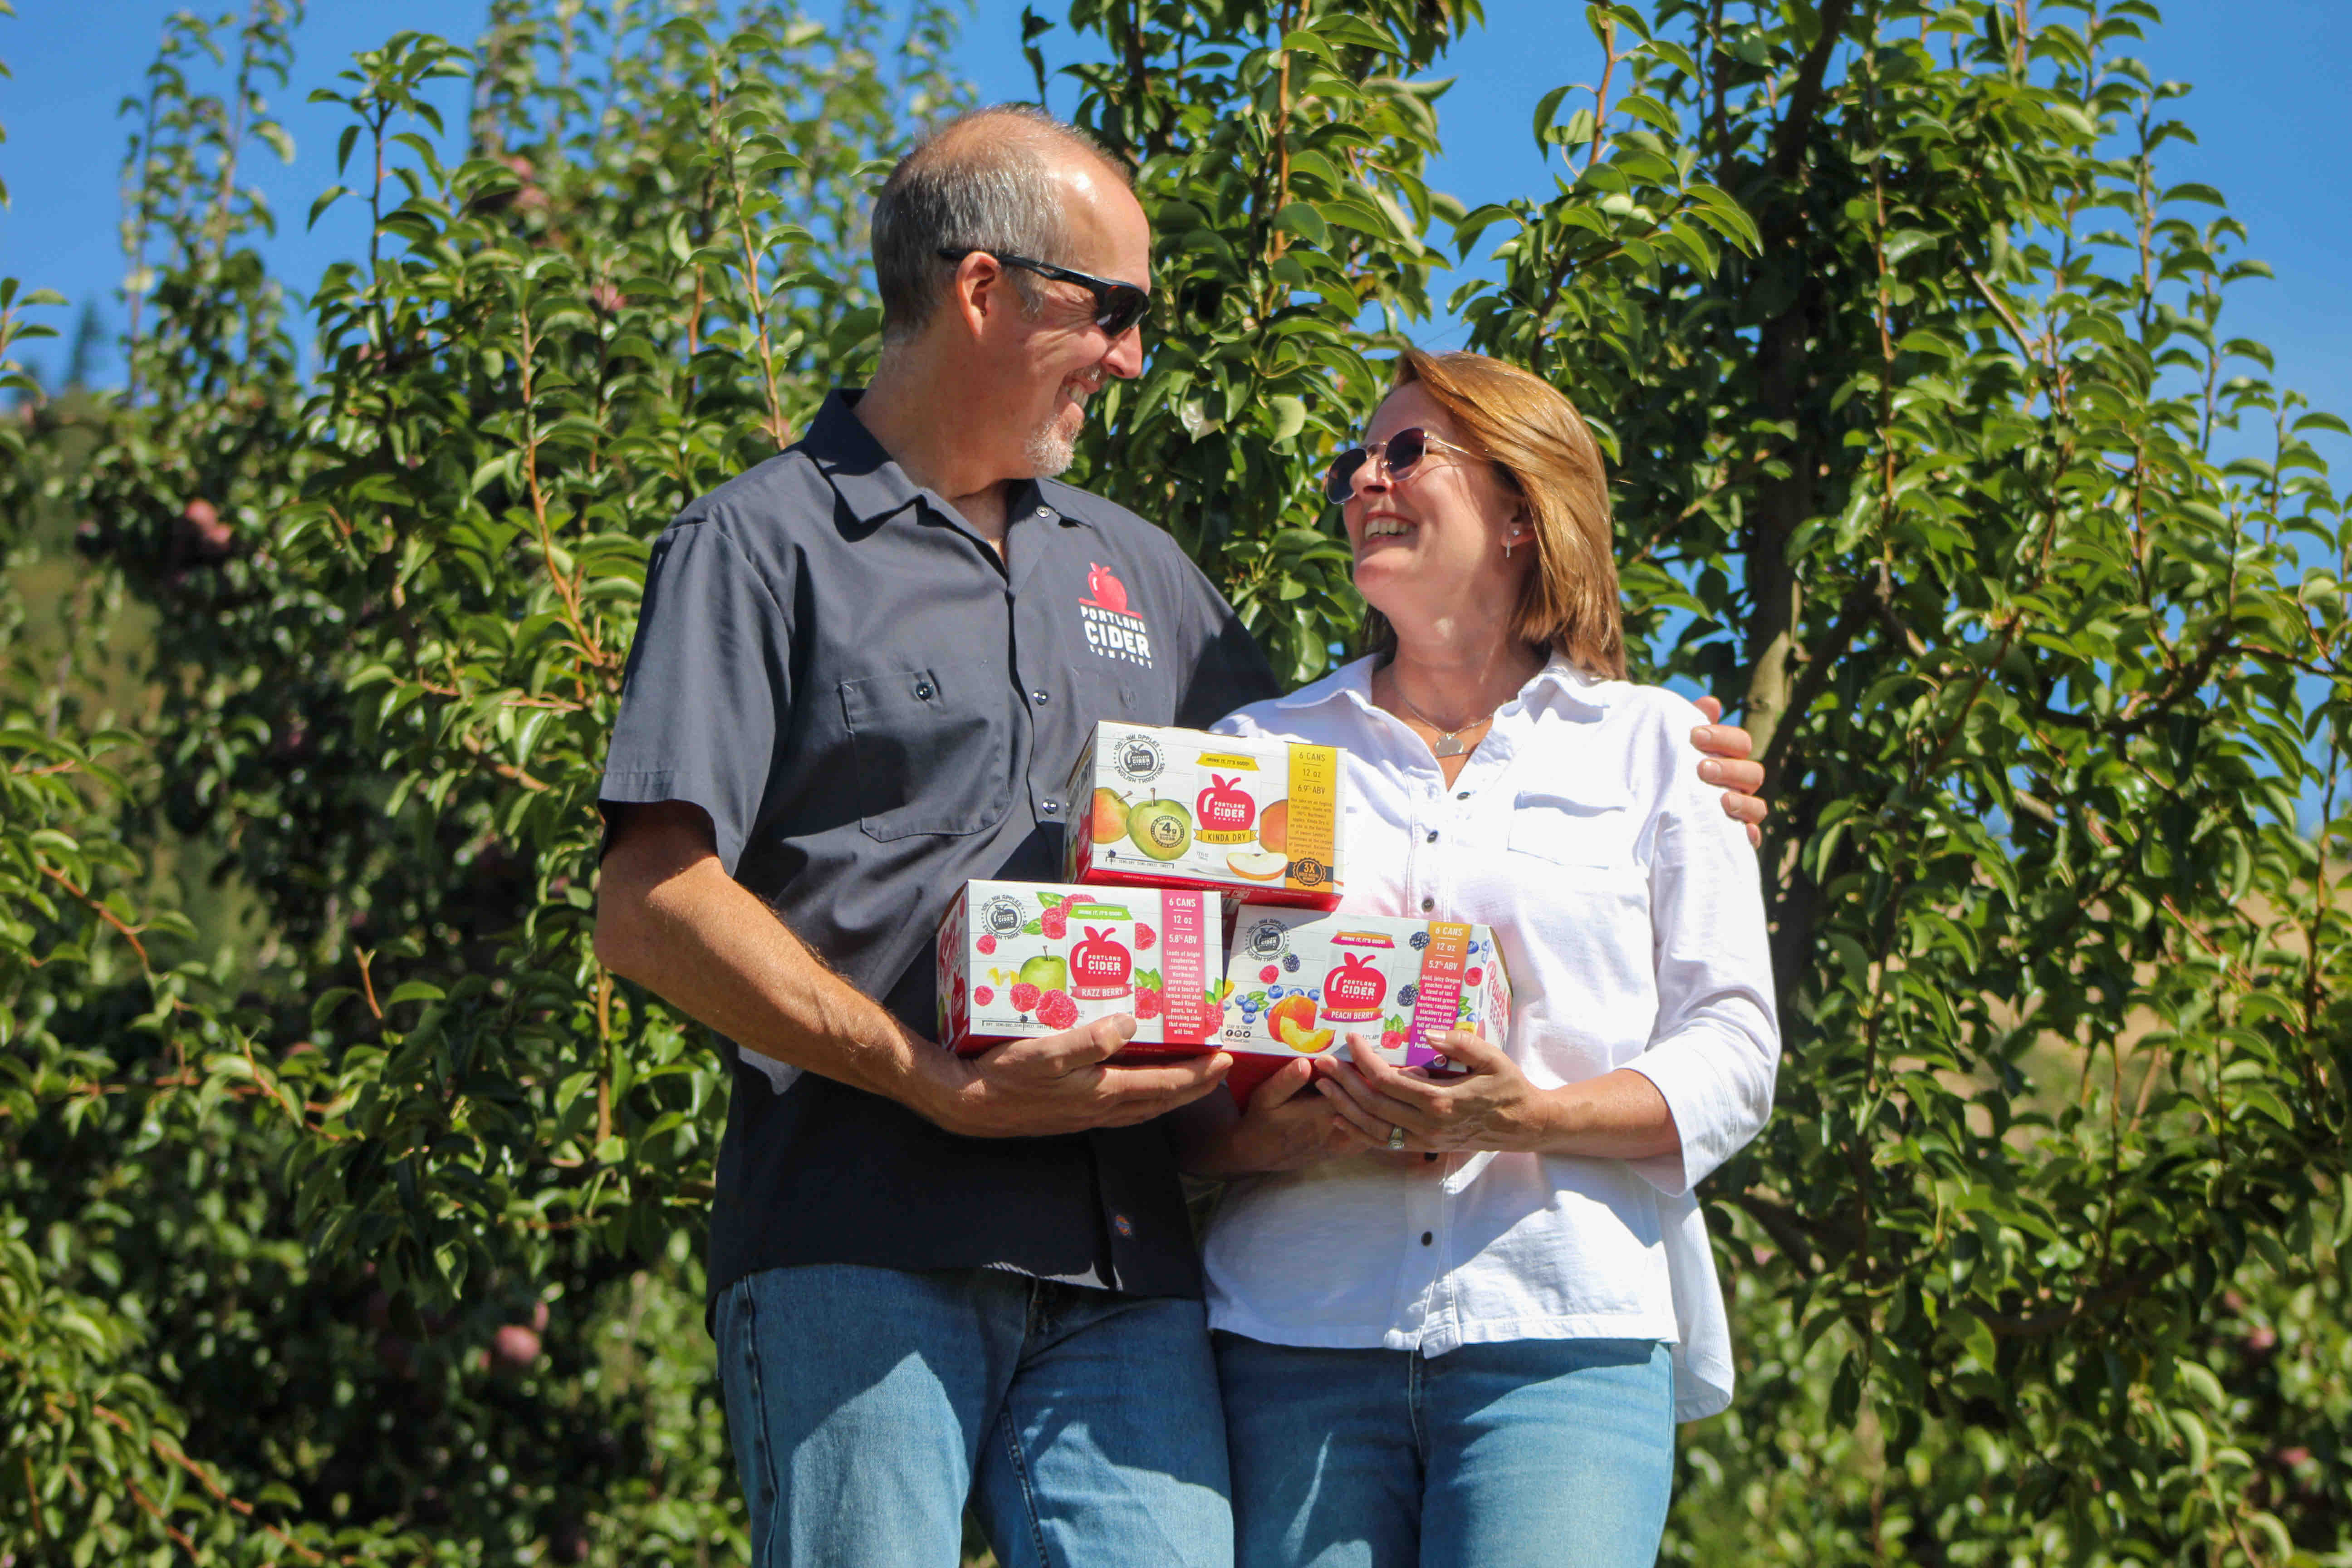 Portland Cider Co. owners Jeff and Lynda Parrish. (image courtesy of Portland Cider Co.)